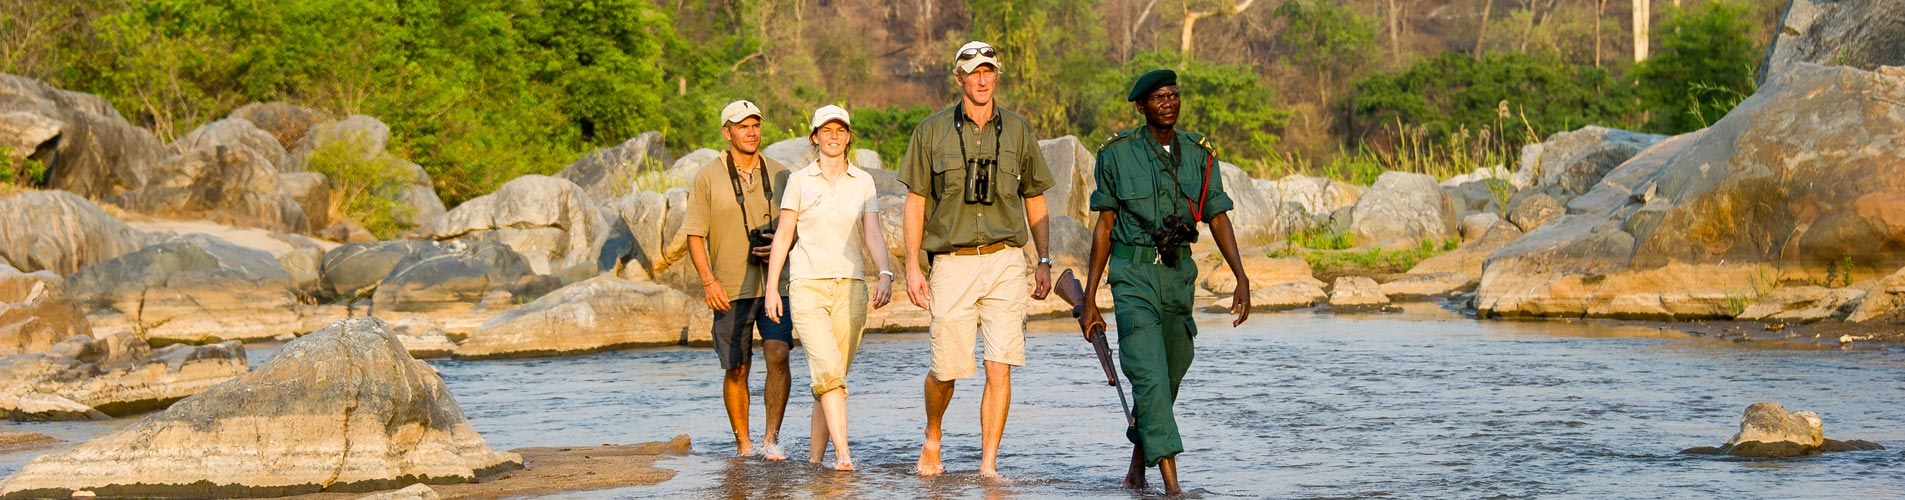 Malawi Safaris Majete Reserve Walking Safari